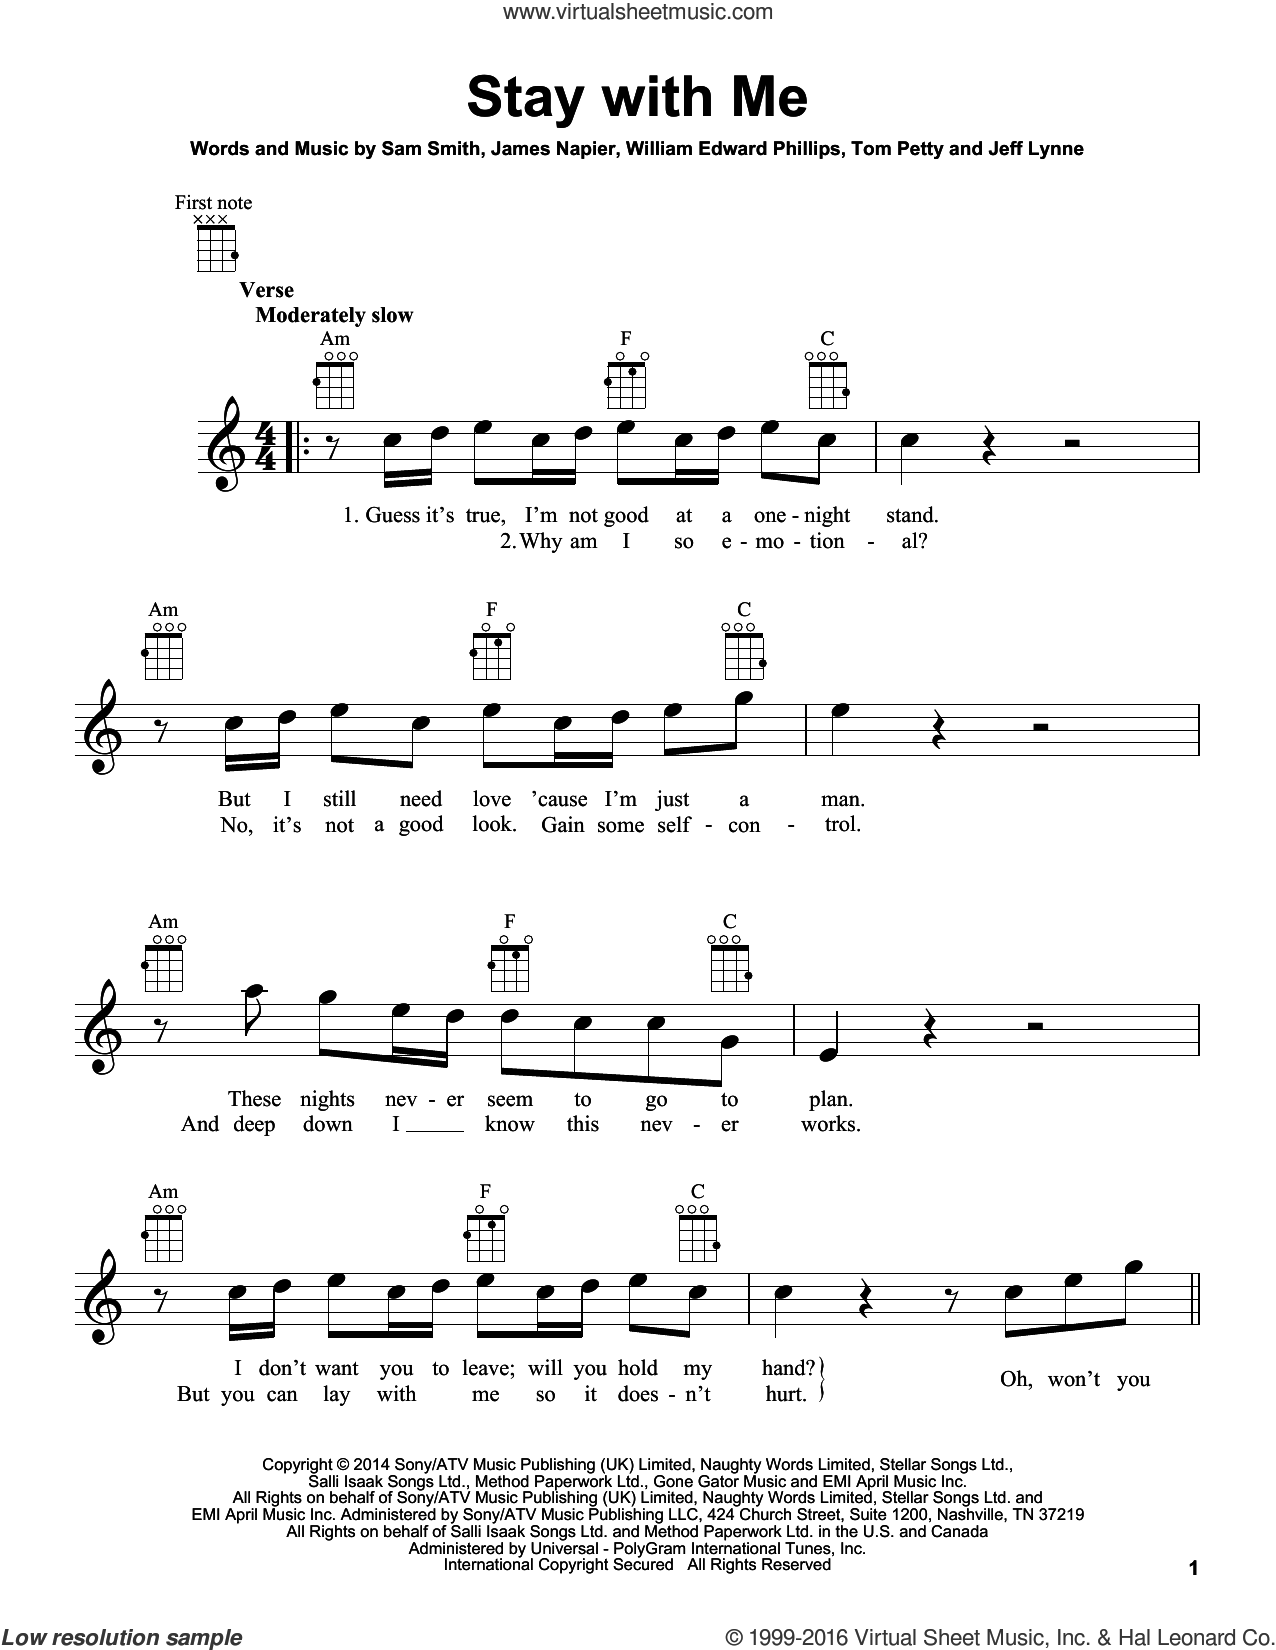 Stay With Me sheet music for ukulele by Sam Smith, James Napier and William Edward Phillips, intermediate skill level